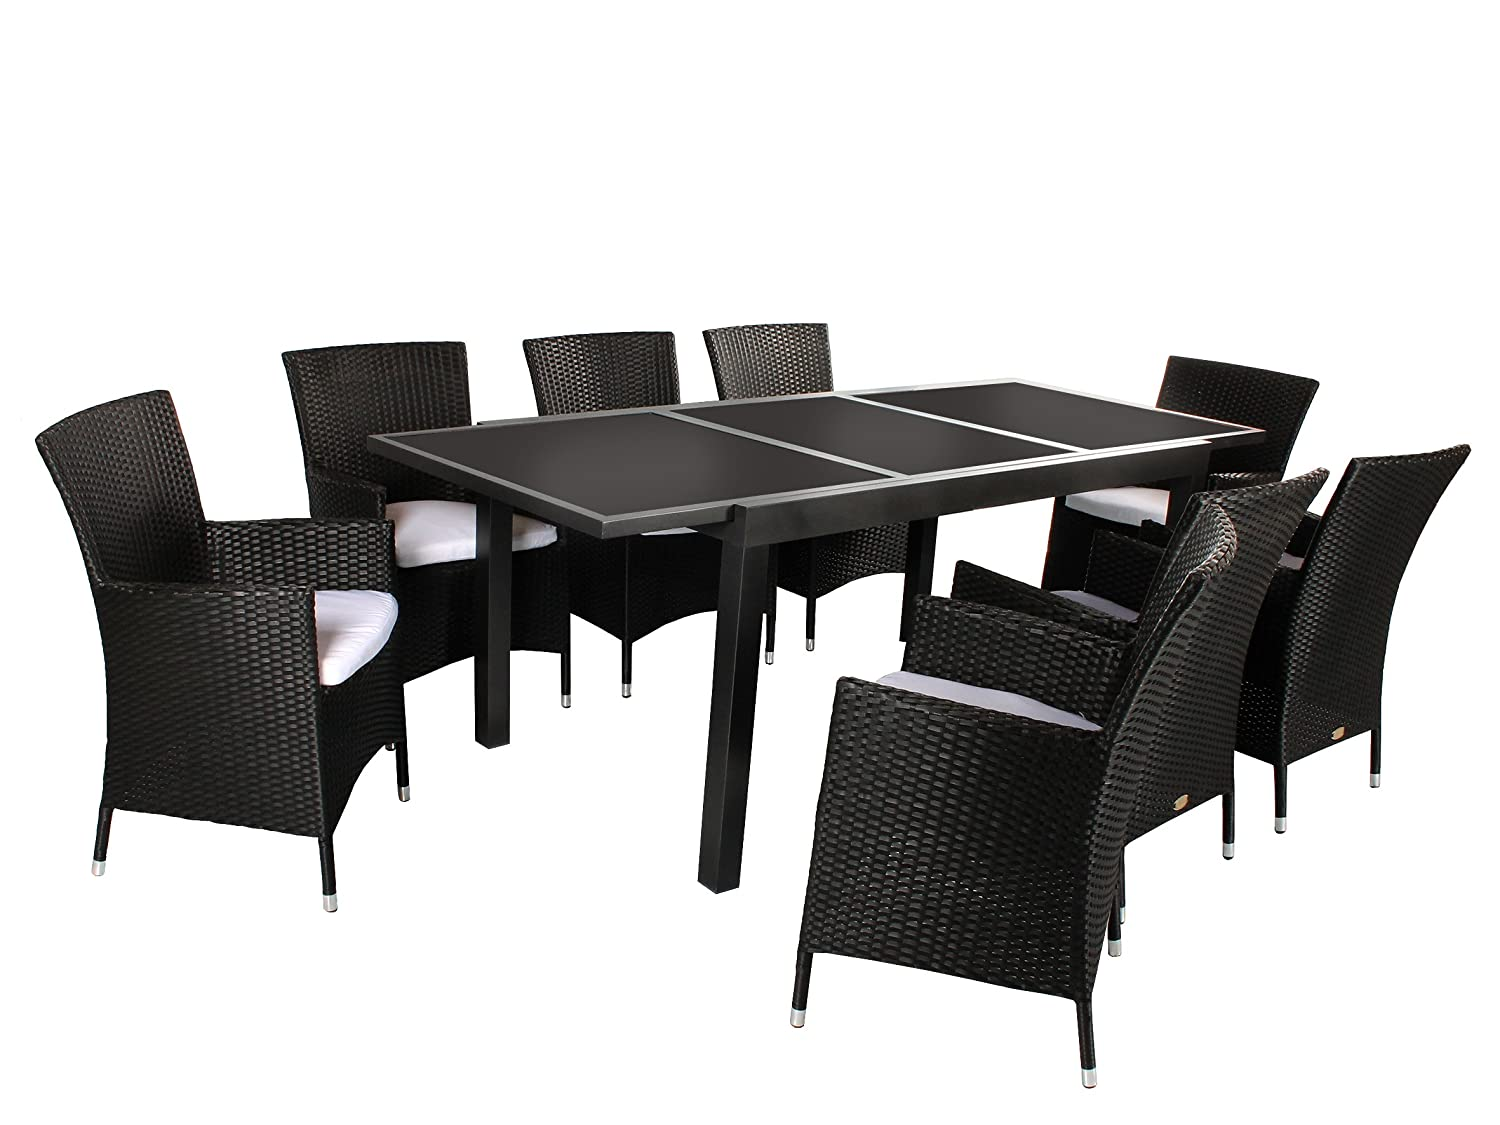 9tlg sitzgruppe verona aluminium ausziehtisch ca 150 210 x 90 cm anthrazit. Black Bedroom Furniture Sets. Home Design Ideas